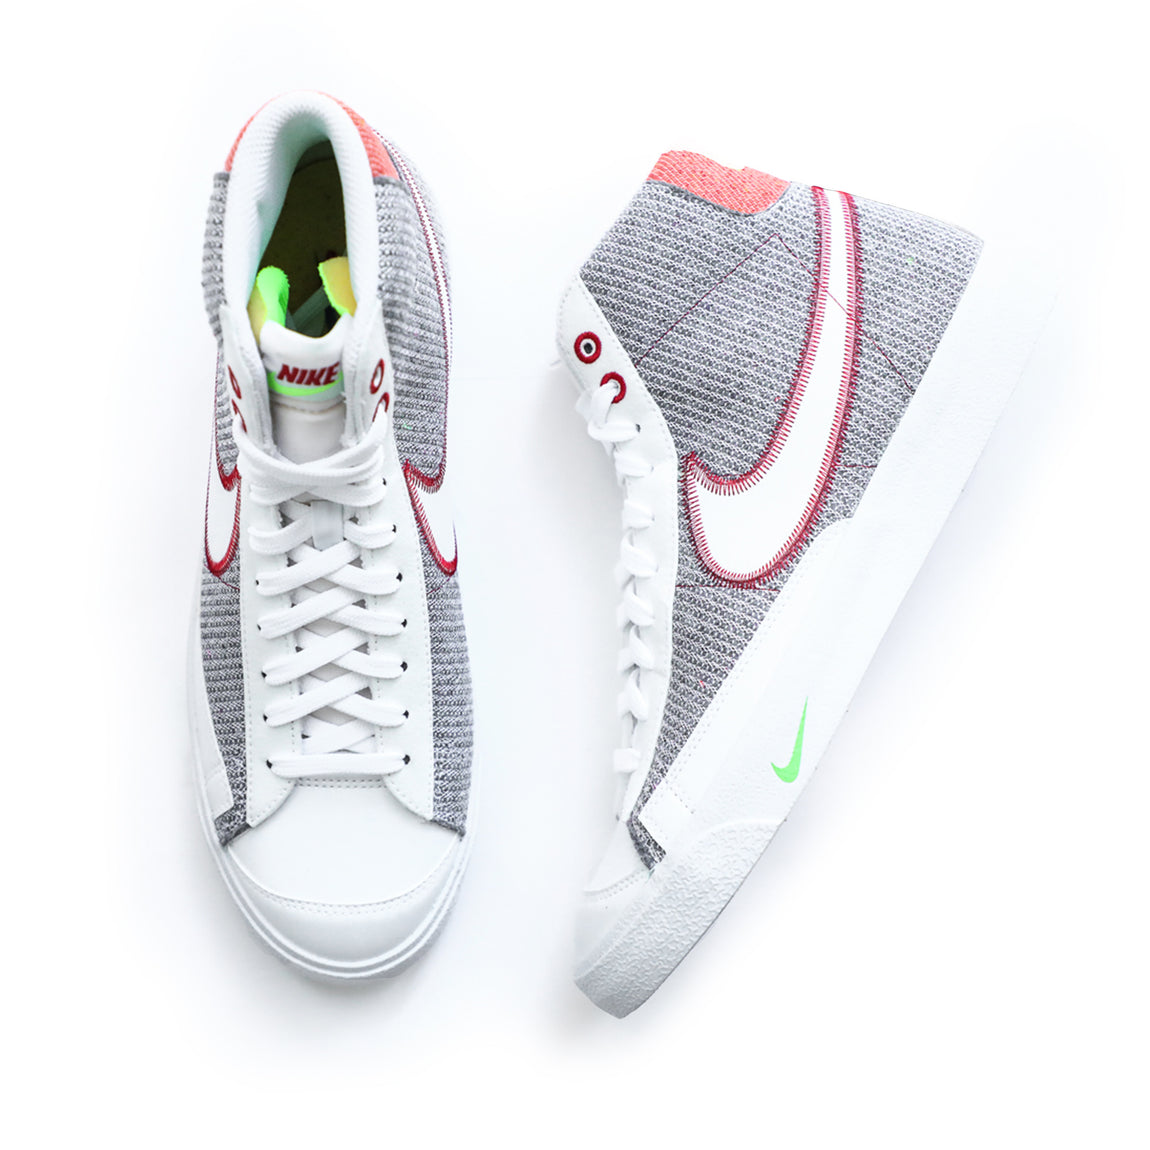 Nike Blazer Mid '77 (Grey/White/Sport Red/Electric Green) - Nike Blazer Mid '77 (Grey/White/Sport Red/Electric Green) -